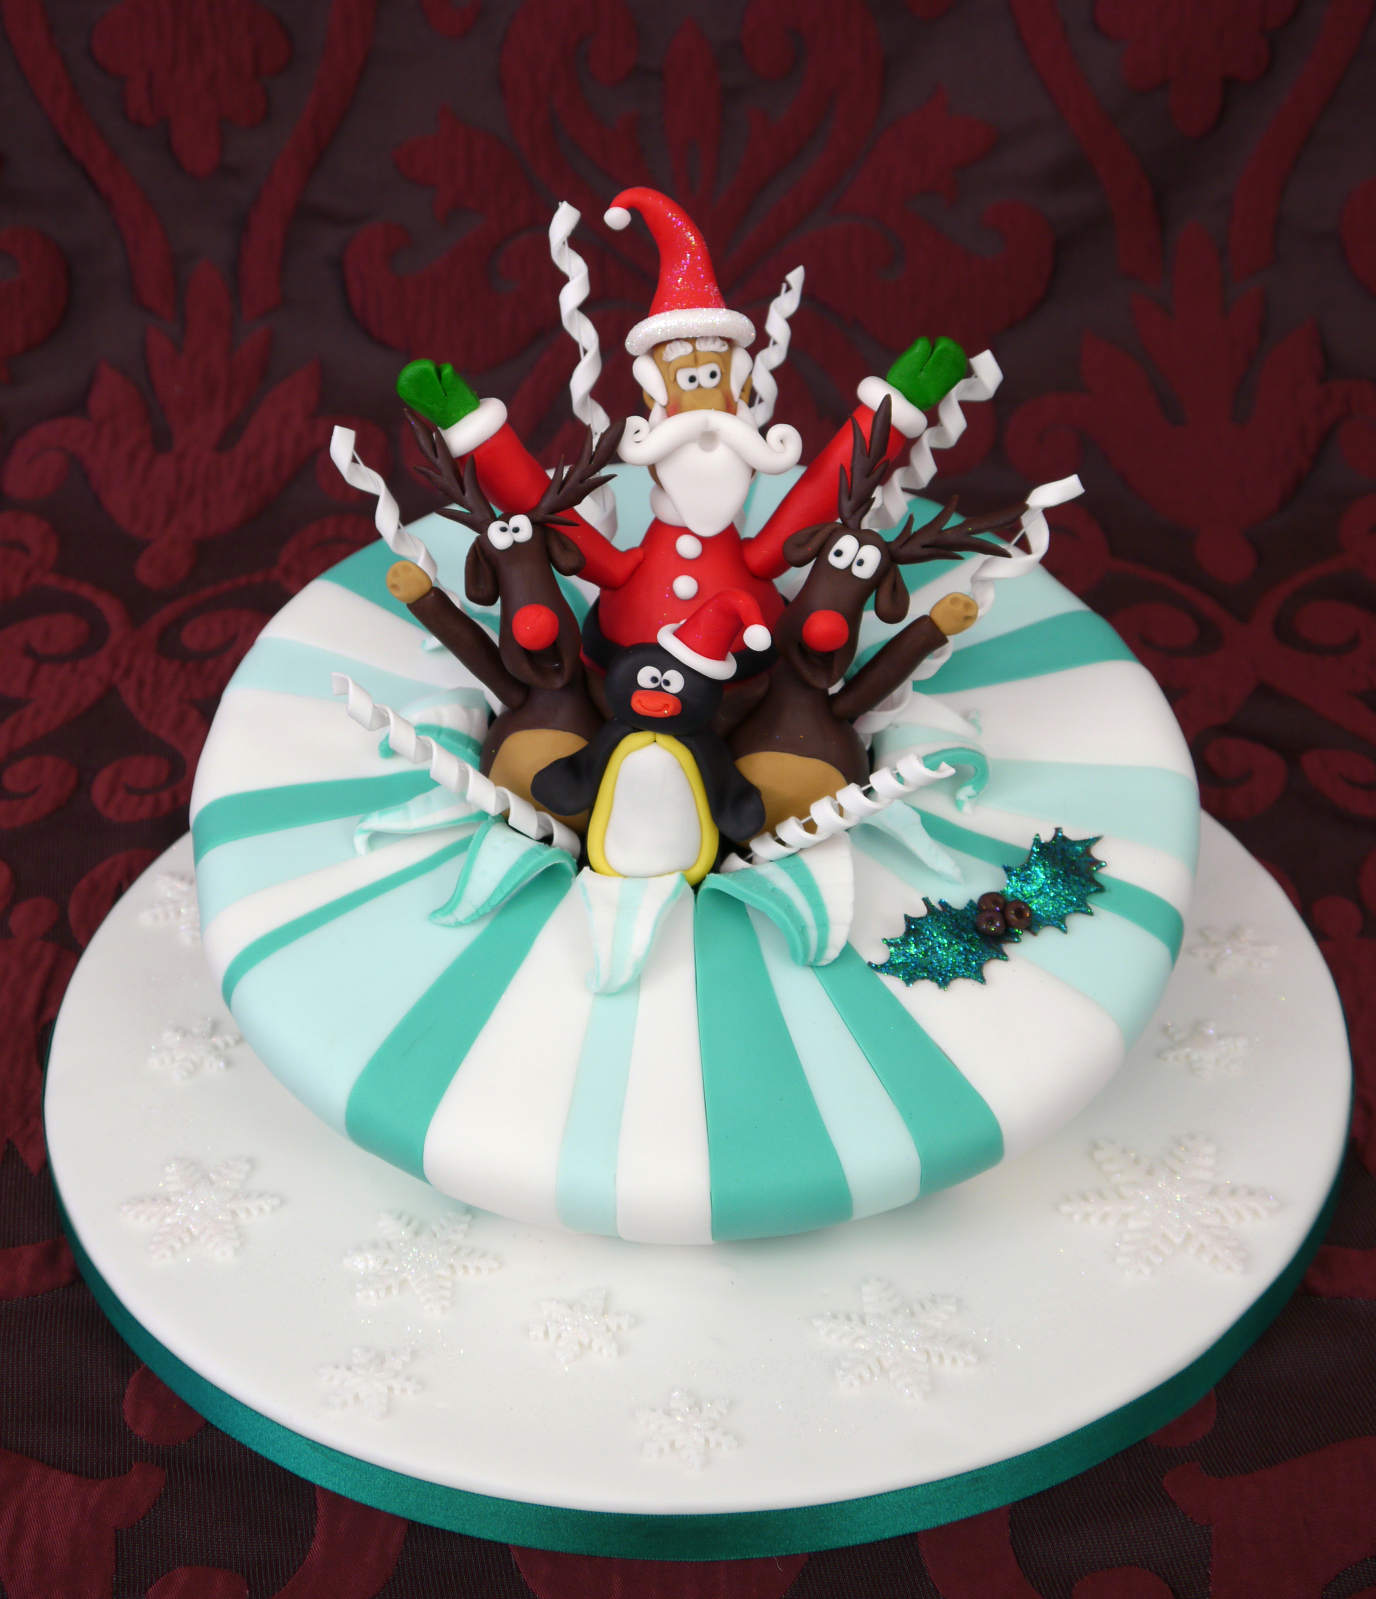 Cake Decorating Ideas For Christmas Cakes : Christmas Cakes   Decoration Ideas Little Birthday Cakes